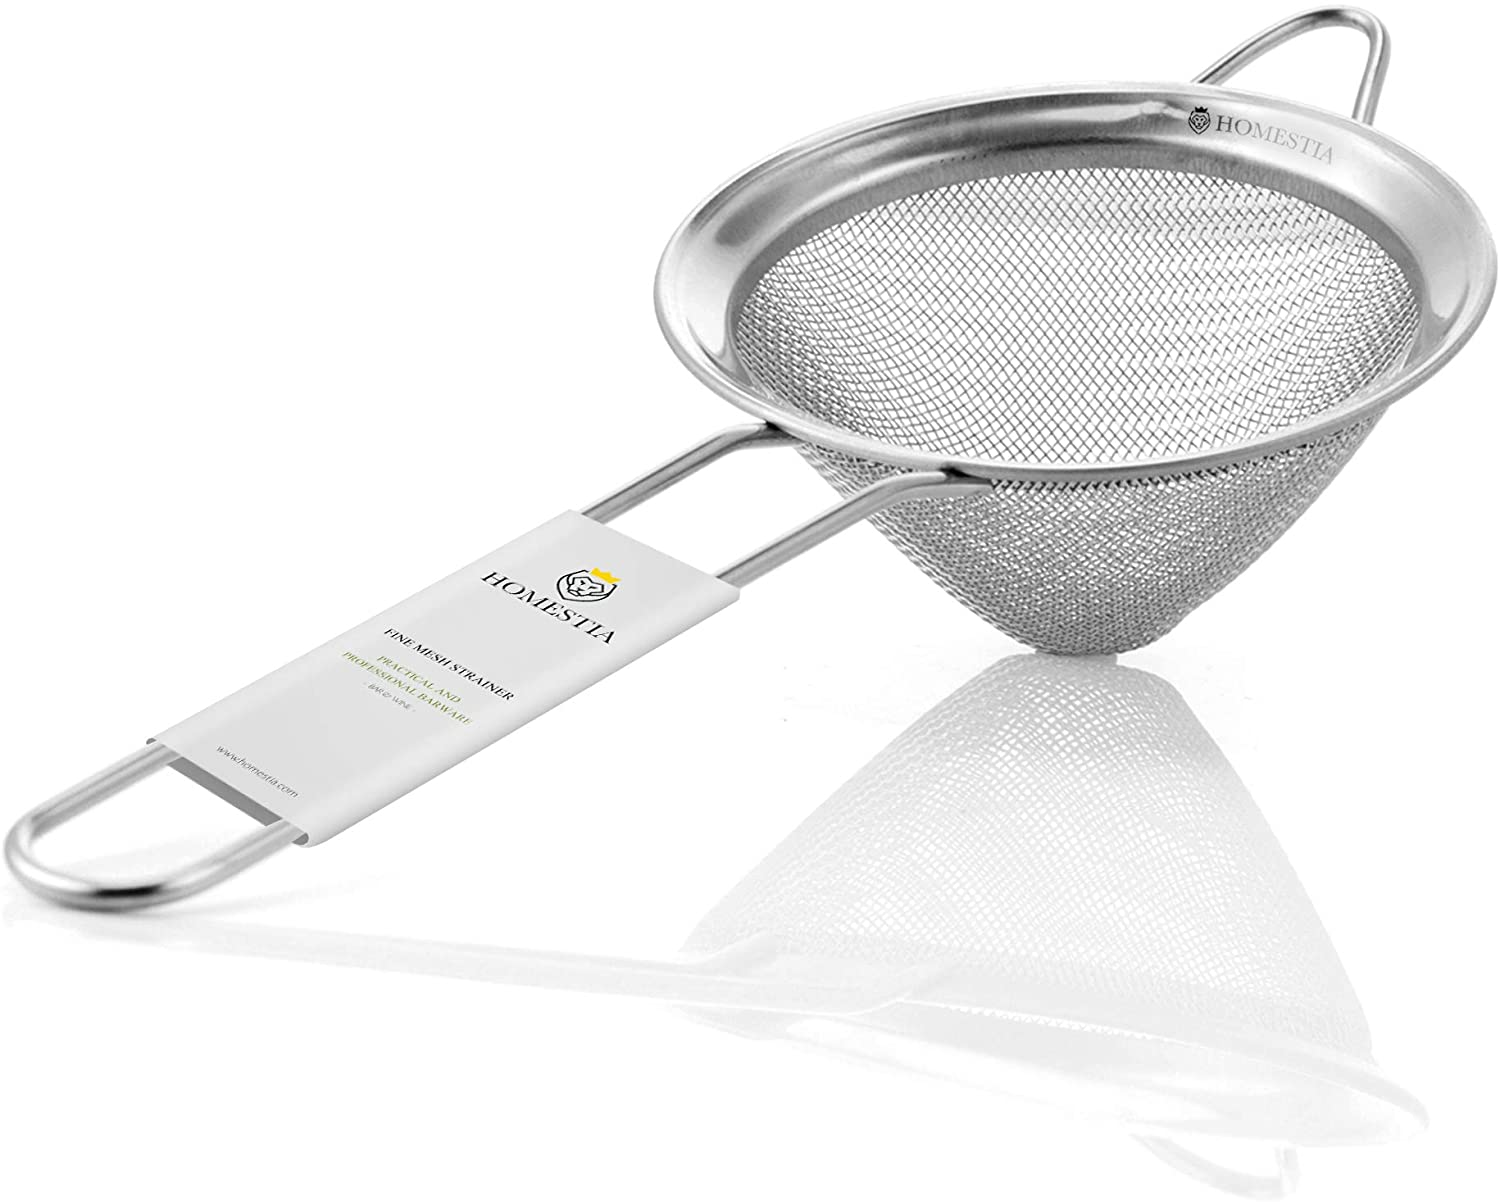 Fine Mesh Sieve Strainer Stainless Steel Cocktail Strainer Food Strainers Tea Strainer Coffee Strainer with Long Handle for Double Straining Utensil 3.3 inch by Homestia